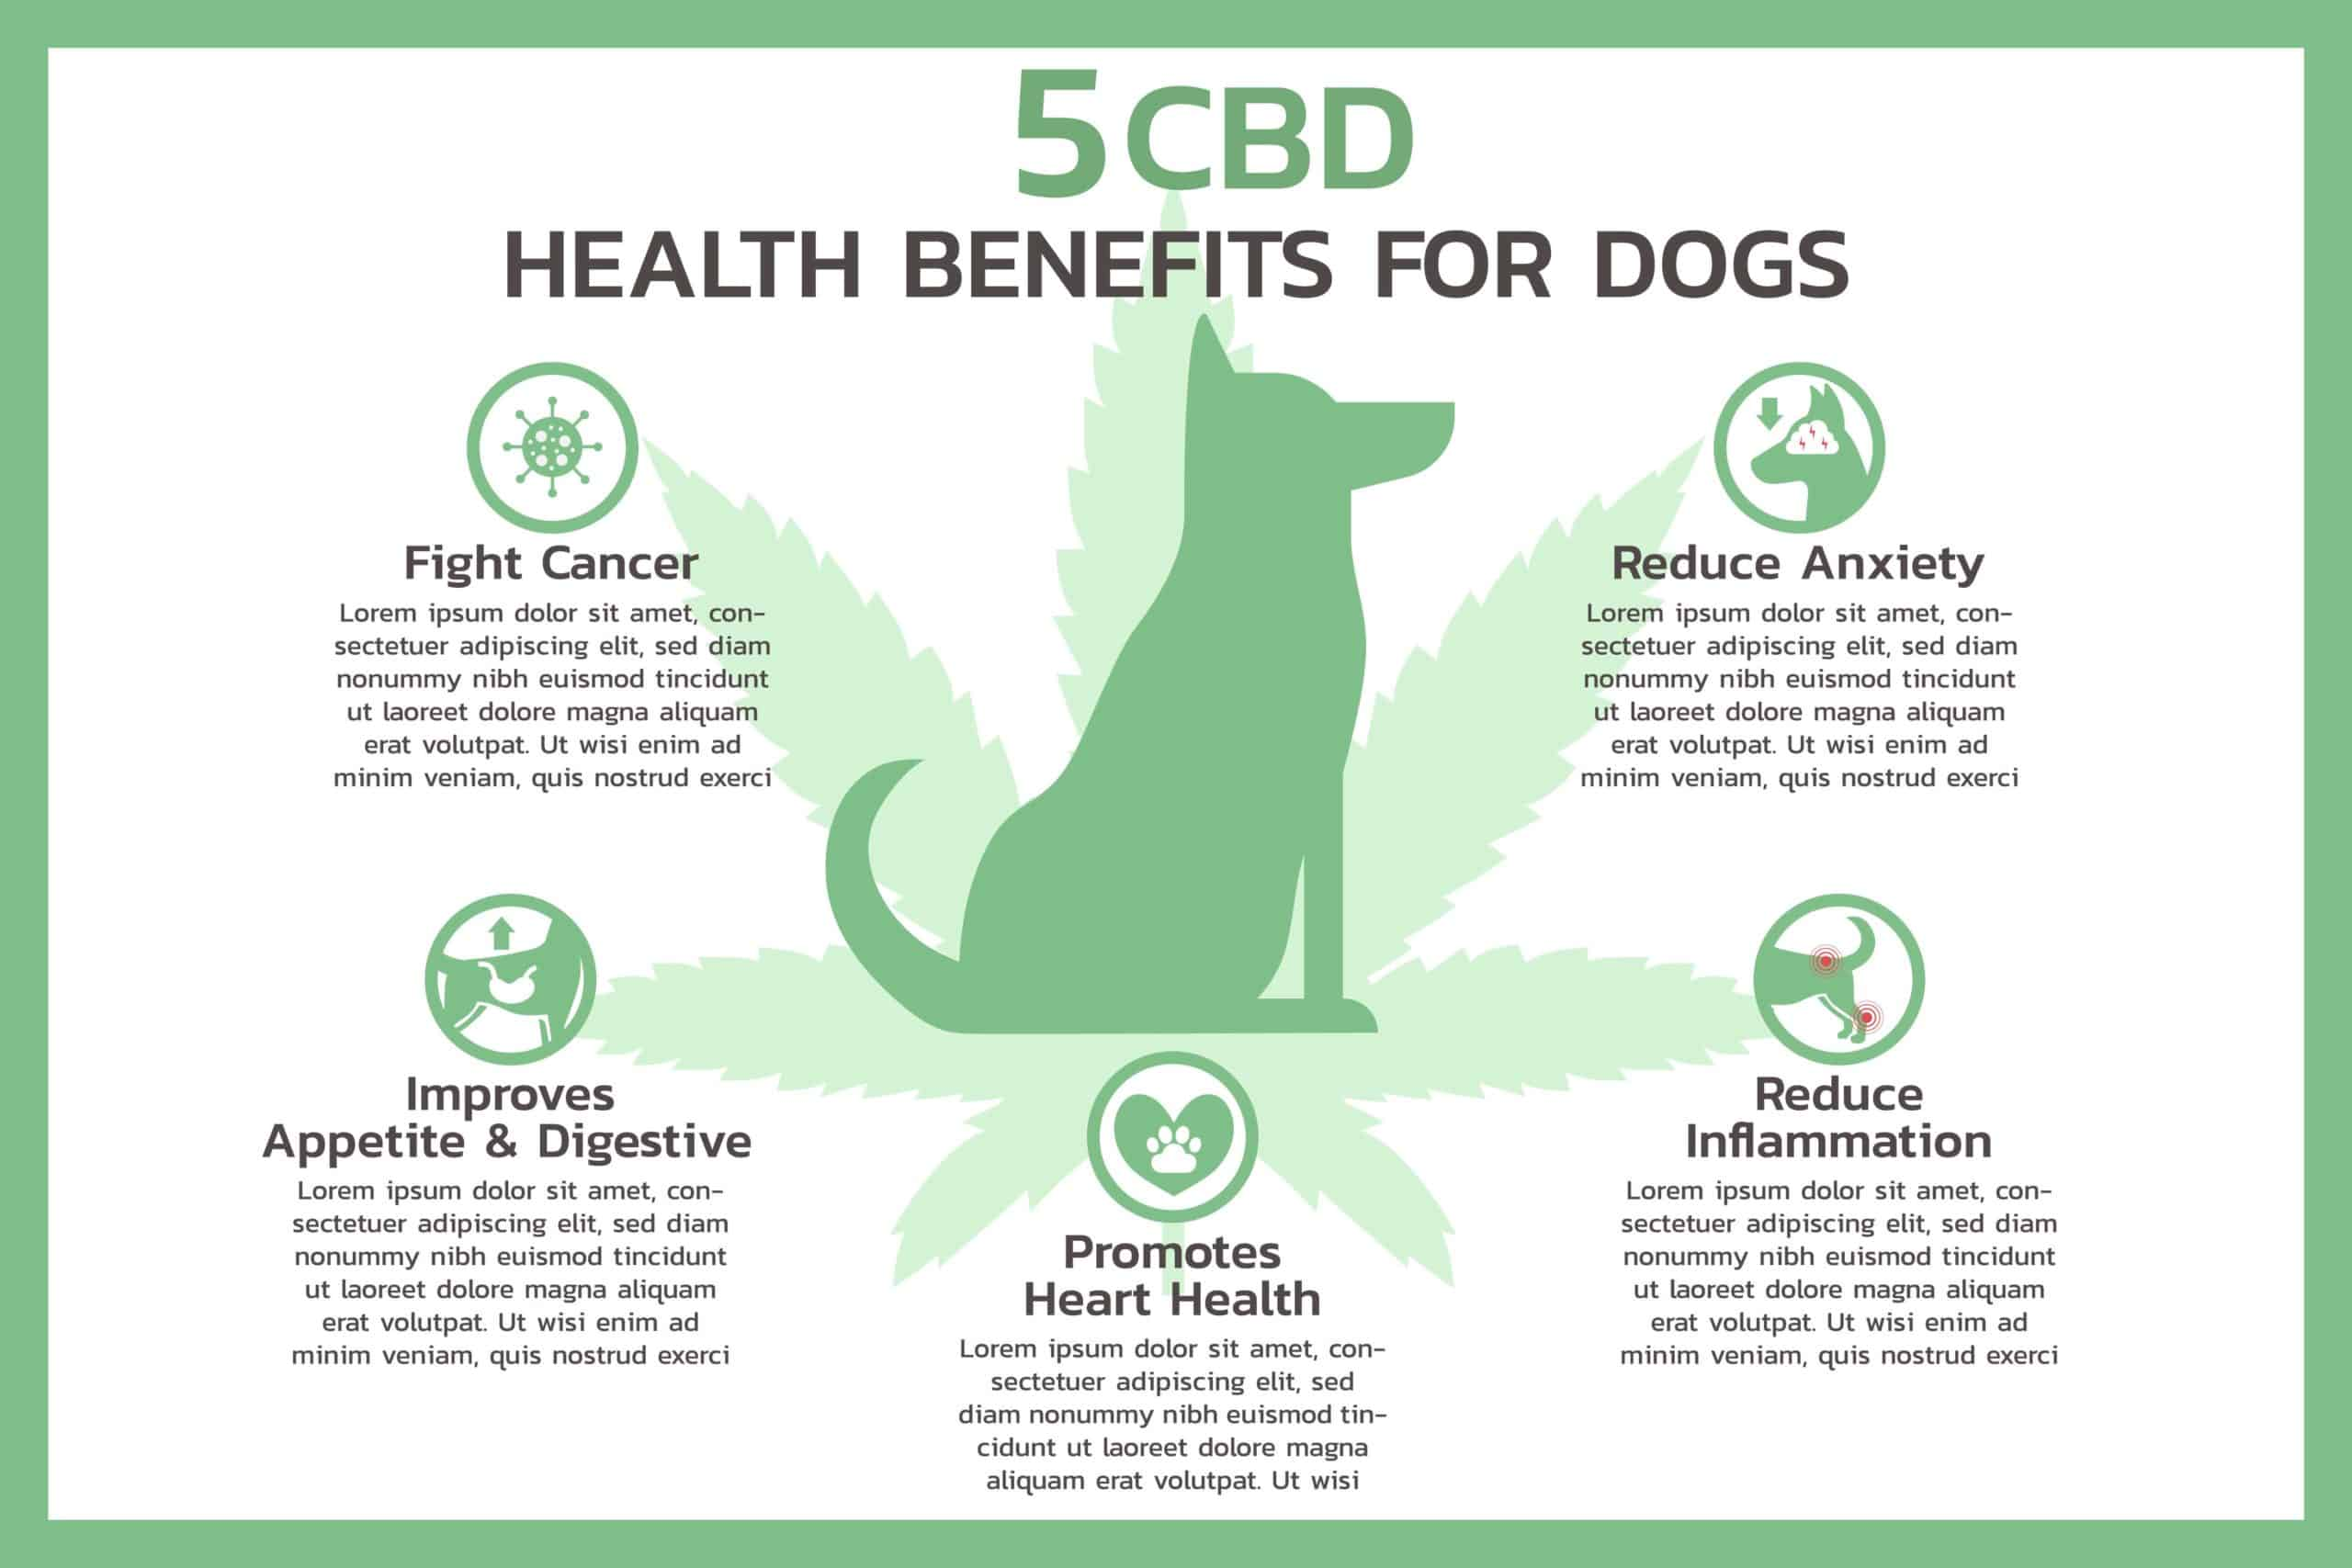 Pet CBD health benefits graphic